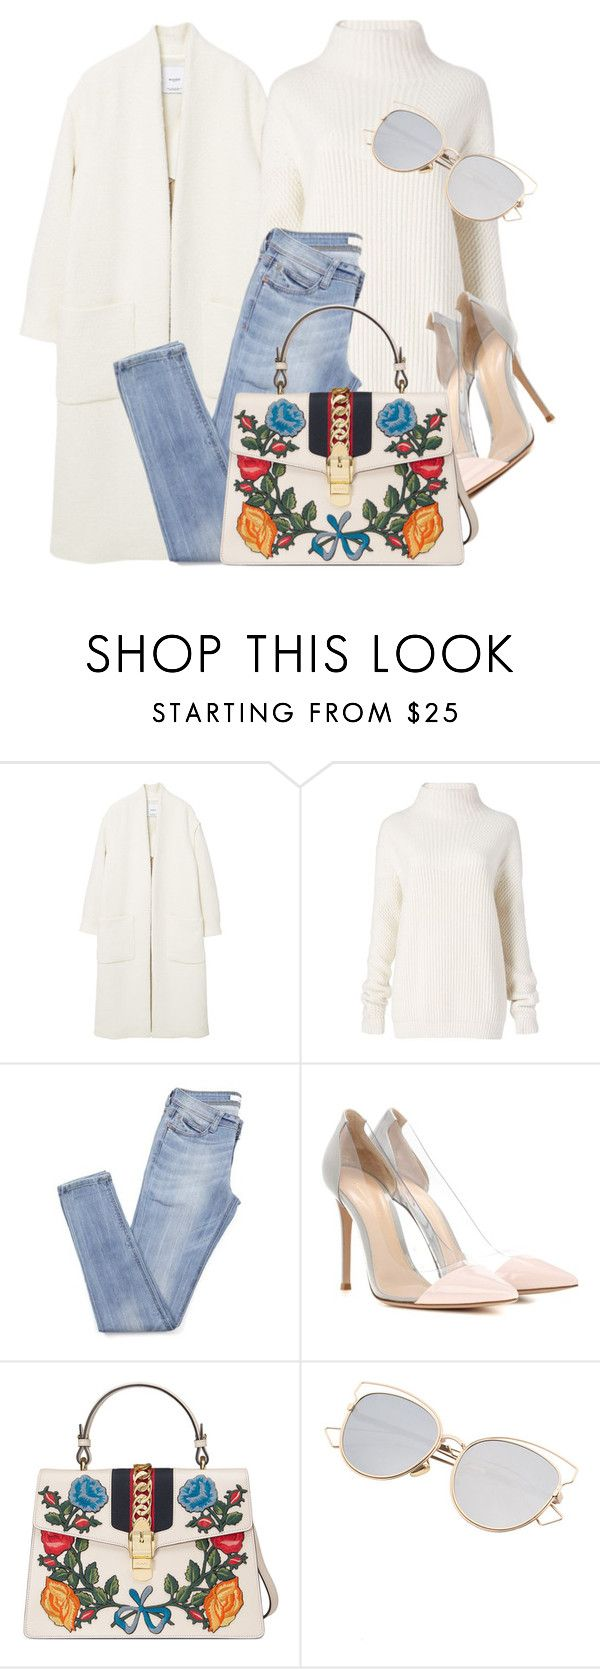 """""""Whites"""" by monmondefou ❤ liked on Polyvore featuring MANGO, Diane Von Furstenberg, Gianvito Rossi, Gucci and white"""